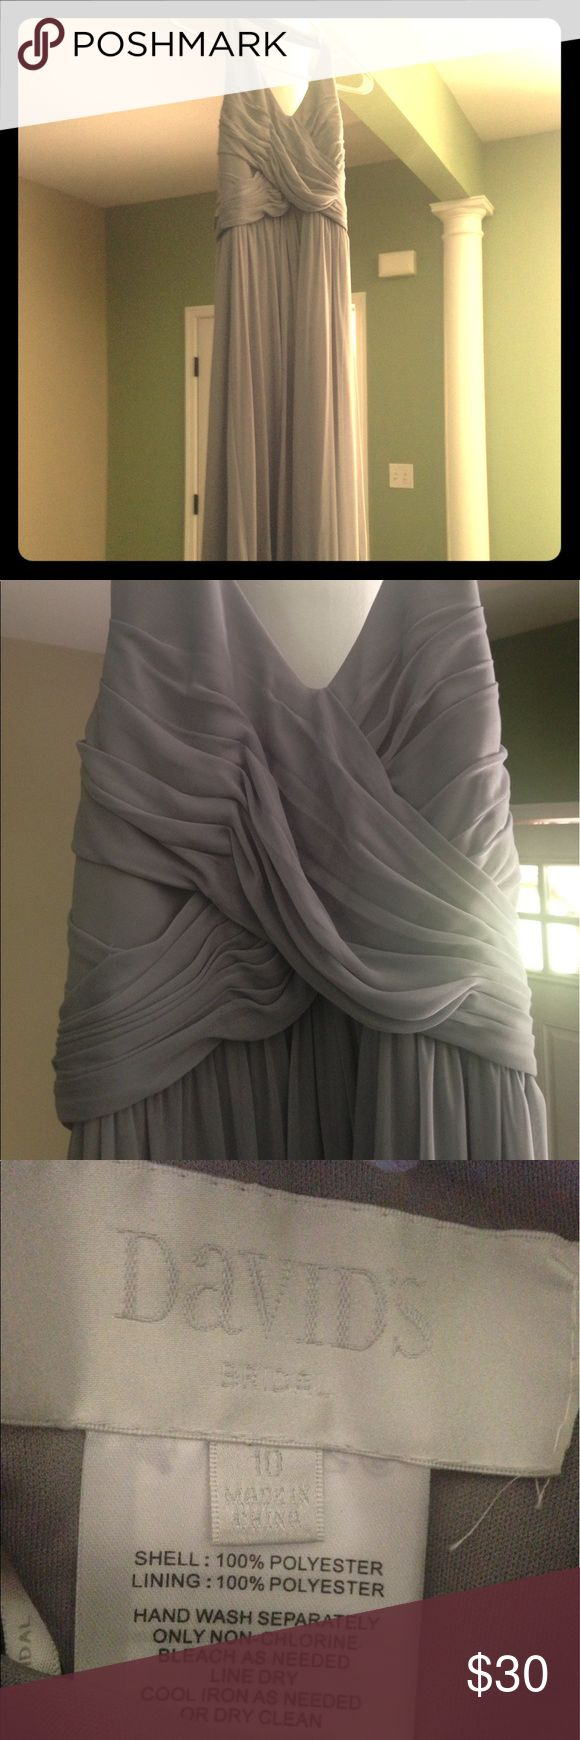 """Bridesmaid dress Worn once and cleaned. Size 10 but altered for a 5'4"""" 130 pound girl. Gray color David's Bridal Dresses Wedding"""